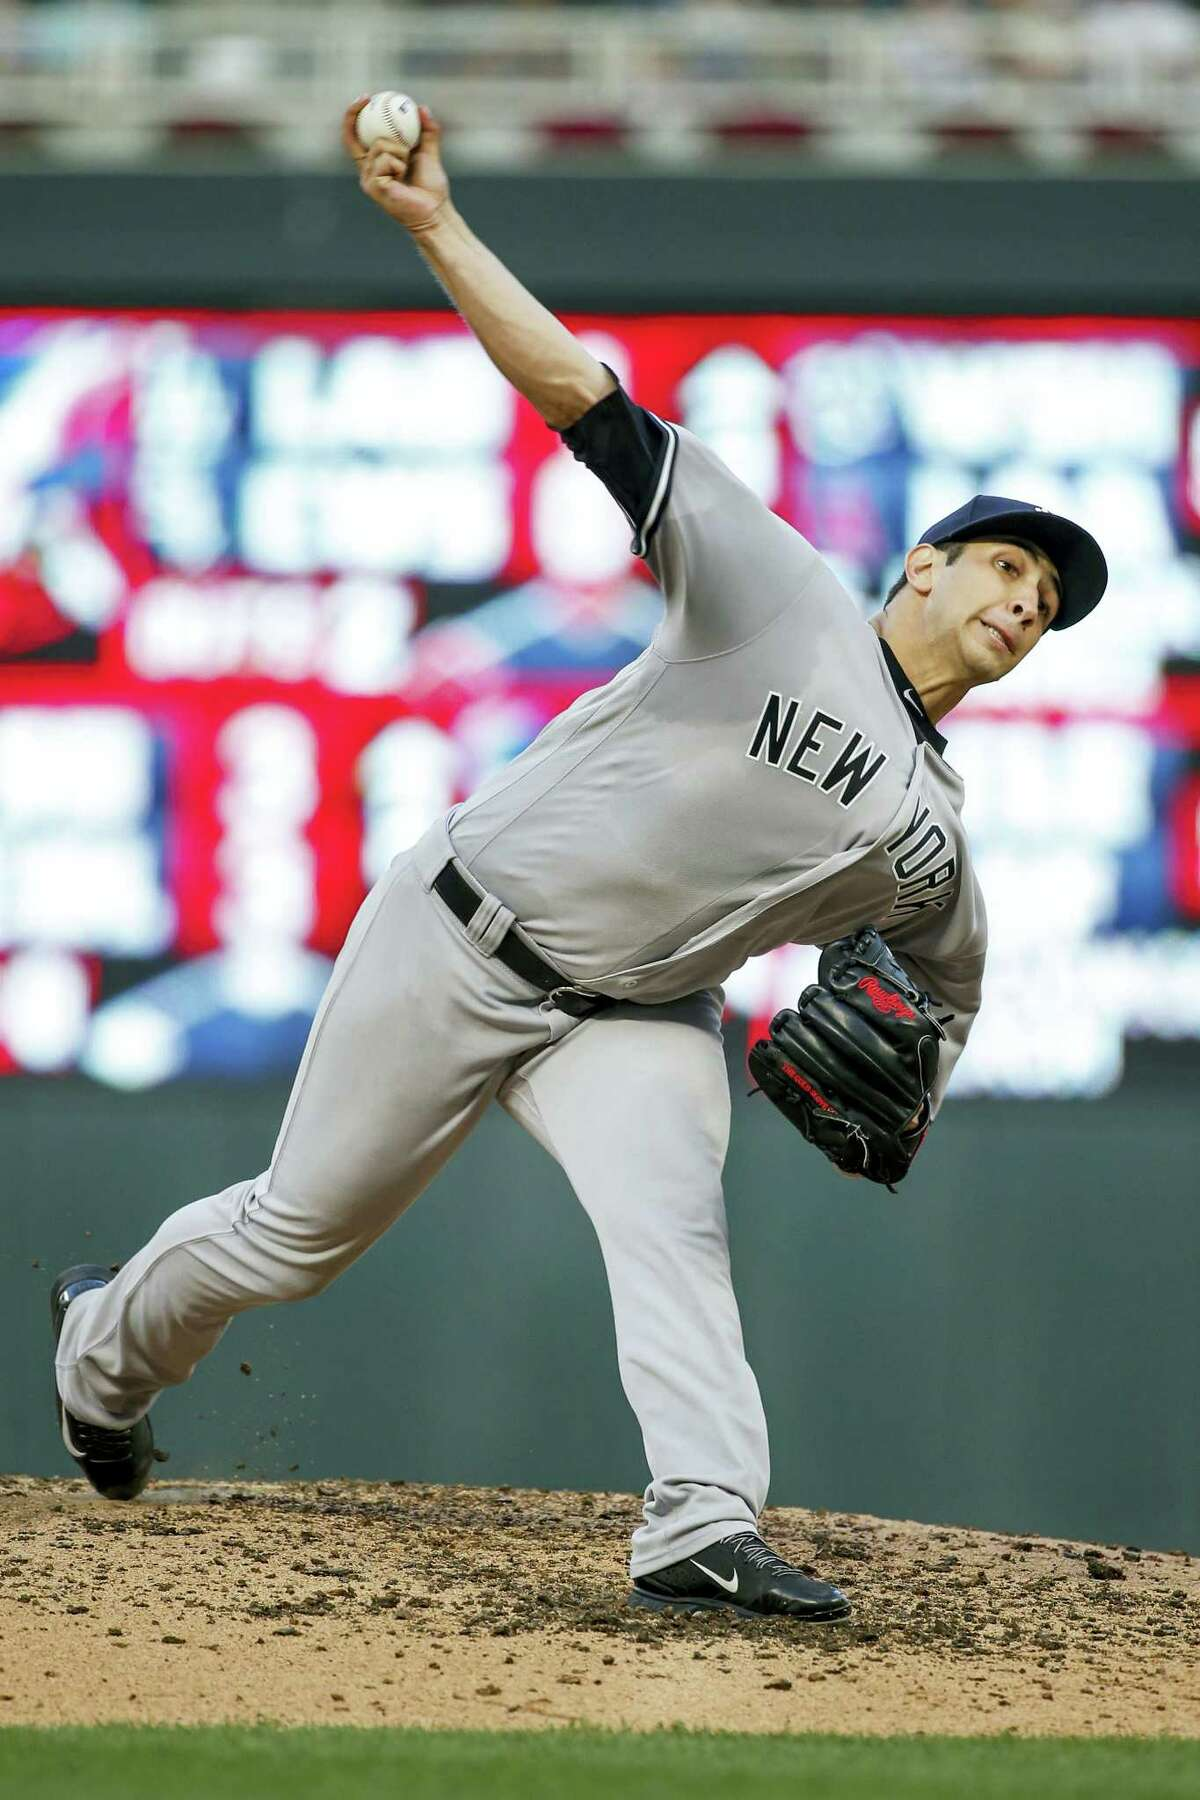 New York Yankees starting pitcher Luis Cessa throws to the Minnesota Twins in the third inning of a baseball game Tuesday, July 18, 2017, in Minneapolis.